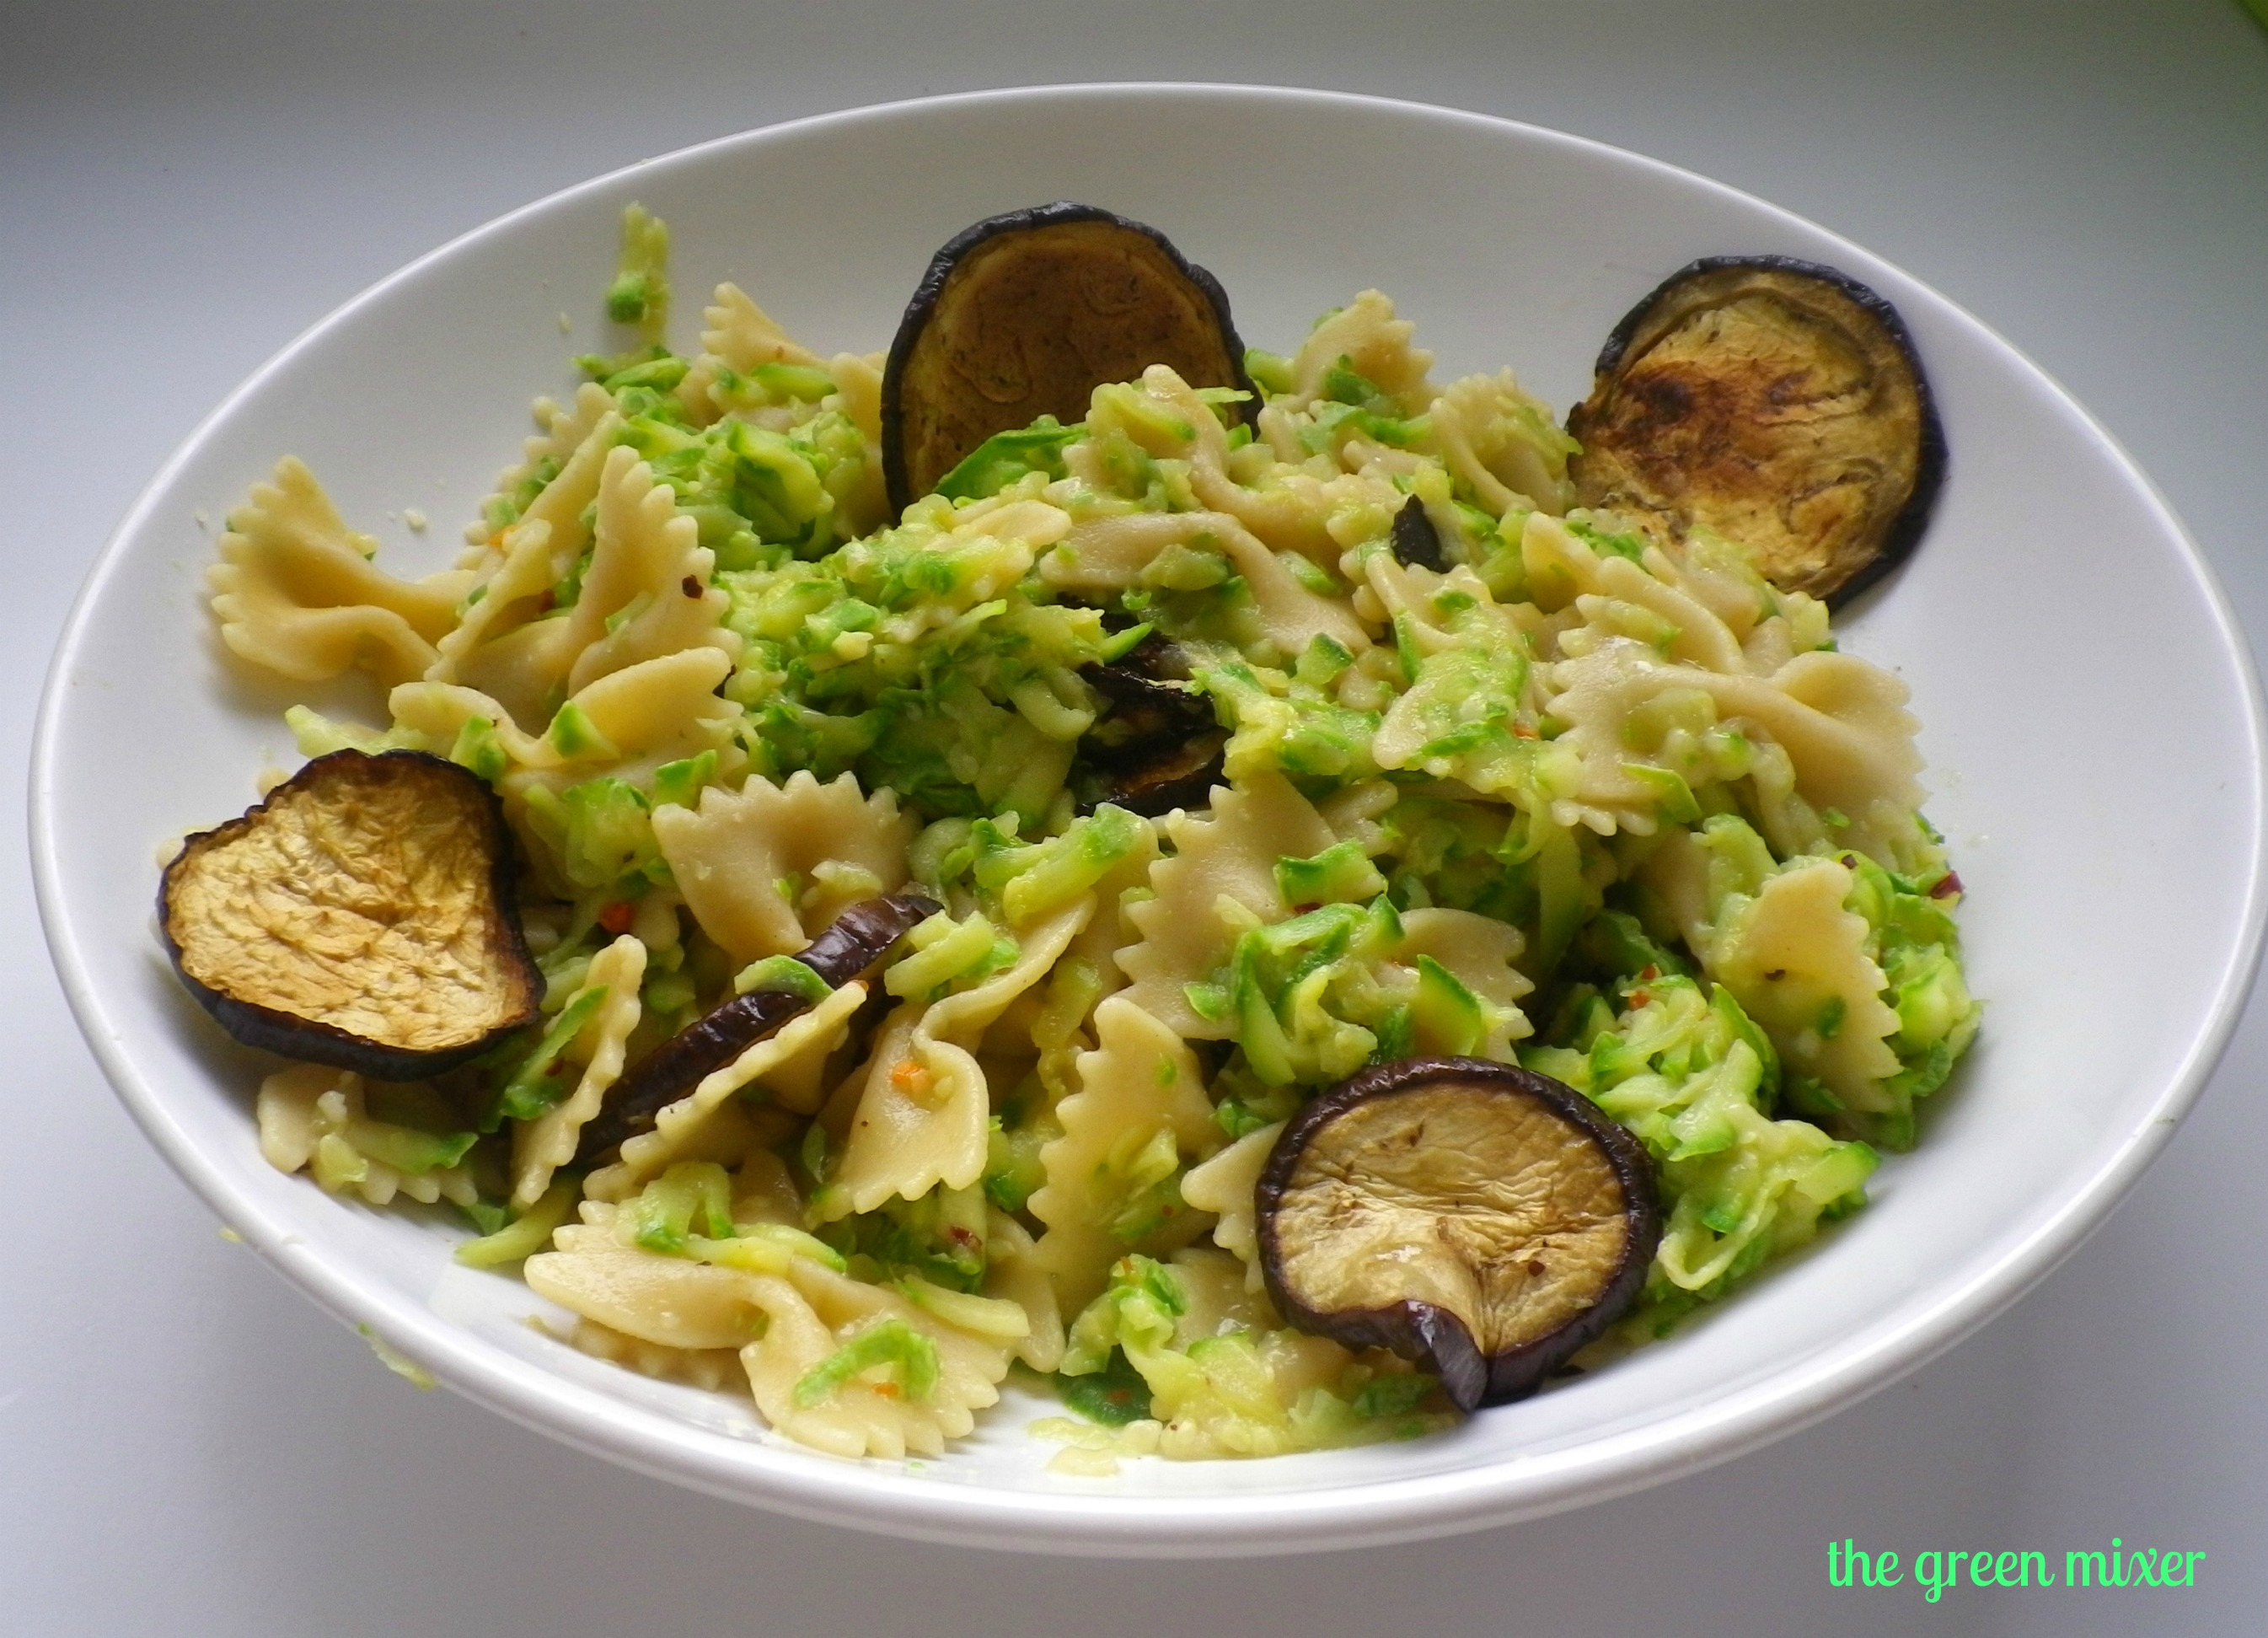 farfalle with zucchini and farfalle with zucchini and farfalle with